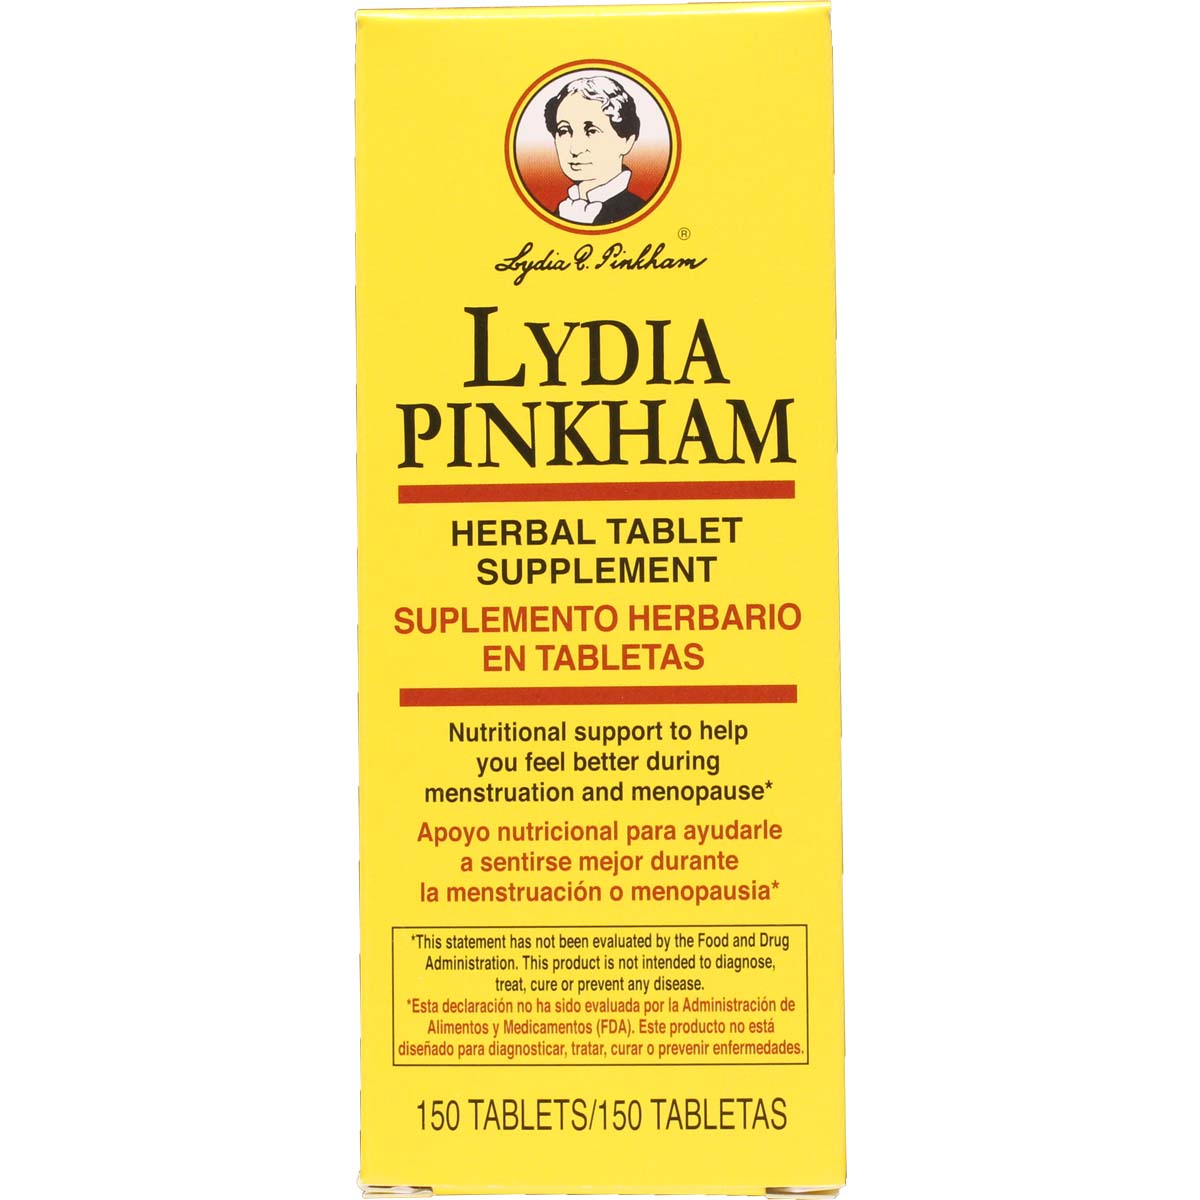 lydia pinkham herbal tablets 150 tablets